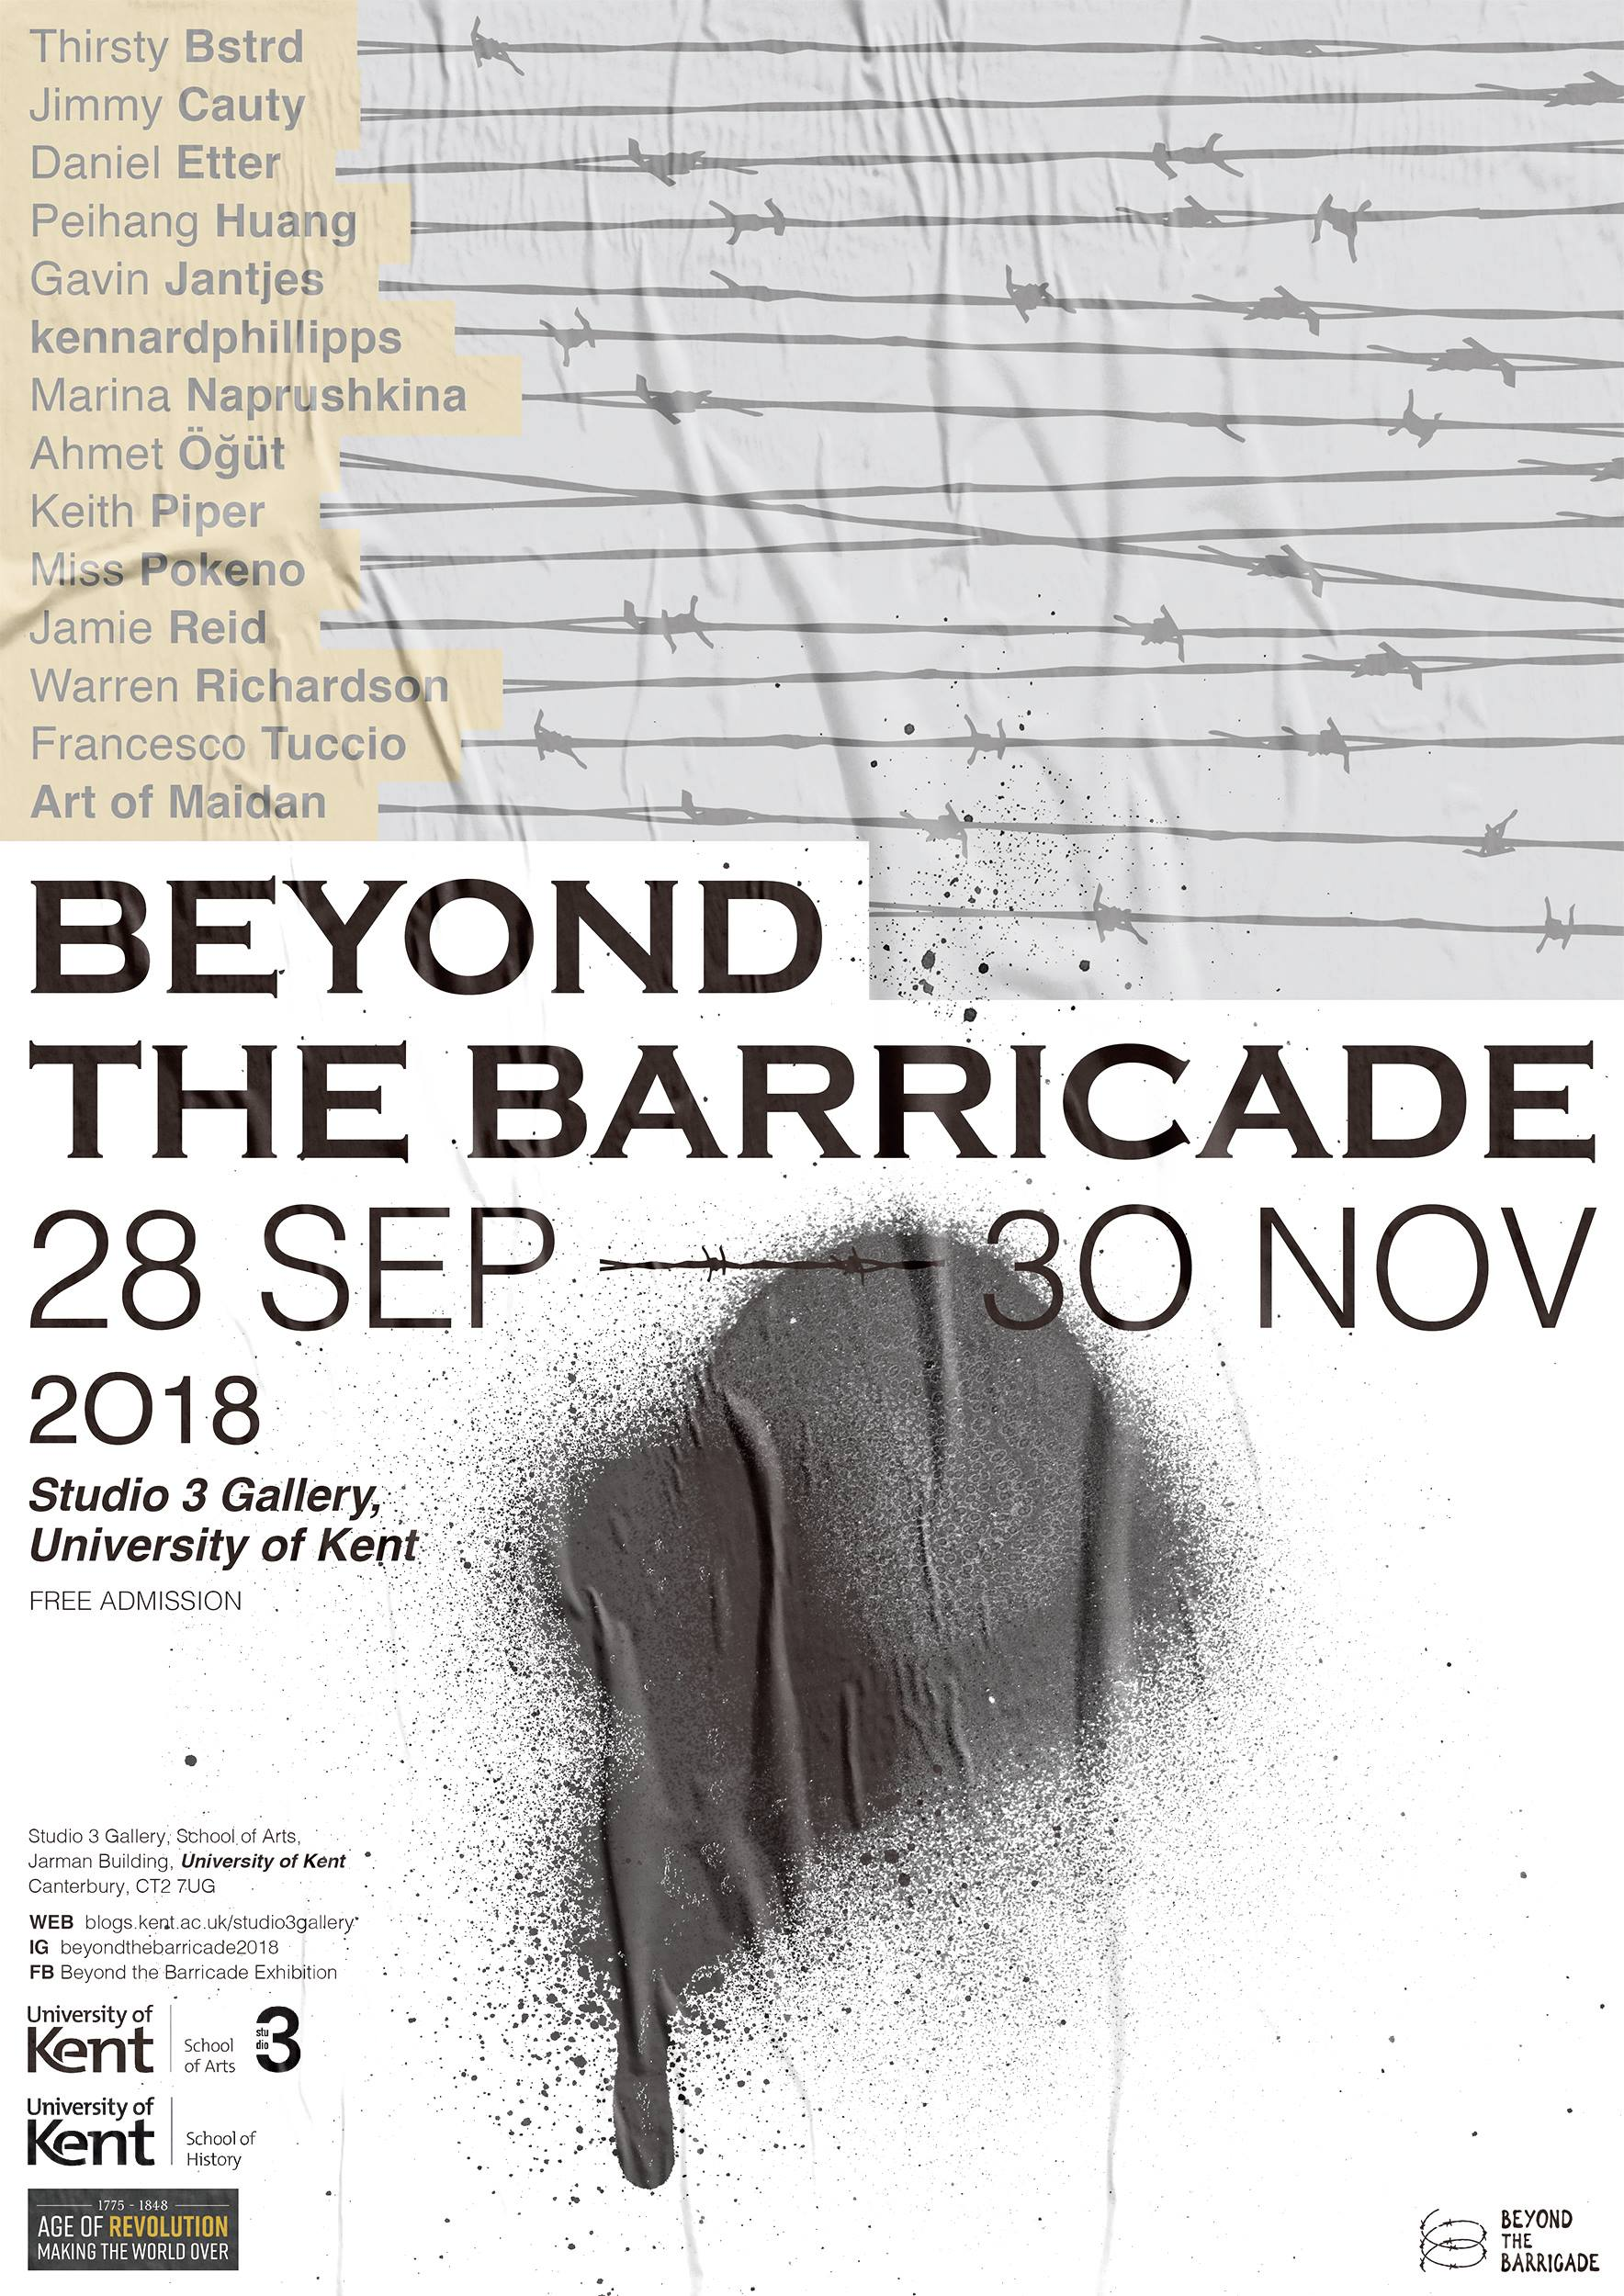 "27 Sep - 30 Nov 2018 Private view | 27 Sep Studio 3 gallery, School of Arts, Jarman building, University of Kent, UK Canterbury, CT2 7UG   ""Beyond the Barricade"" exhibition will be hosted by Studio 3 Gallery (University of Kent, Canterbury) between 28 September – December 2018.  By documenting past upheavals and recent events, the exhibition aims to present artistic creation as a form of social and political action. 'Barricade' originates from the French 'barrique' (barrel) and denotes a physical barrier designed to resist, obstruct or protect. The first barricade as an expression of socio-political turmoil is usually traced back to 16th century France and was largely employed during the 19th century revolutionary events. Nowadays barricades take many forms and shapes but remain essential elements of protests and revolutions.  *The Waterloo 200 Project. ▪️The exhibition, Beyond the Barricade is as part of the nationally funded Waterloo 200 project which looks at the Age of Revolutions.Waterloo 200 is your guide to the Waterloo Bicentenary in 2015 and the period of revolution in Europe between the French revolution in 1789 and the European revolutions of 1848 that spread across France, Germany, Italy and the Austrian Empire."